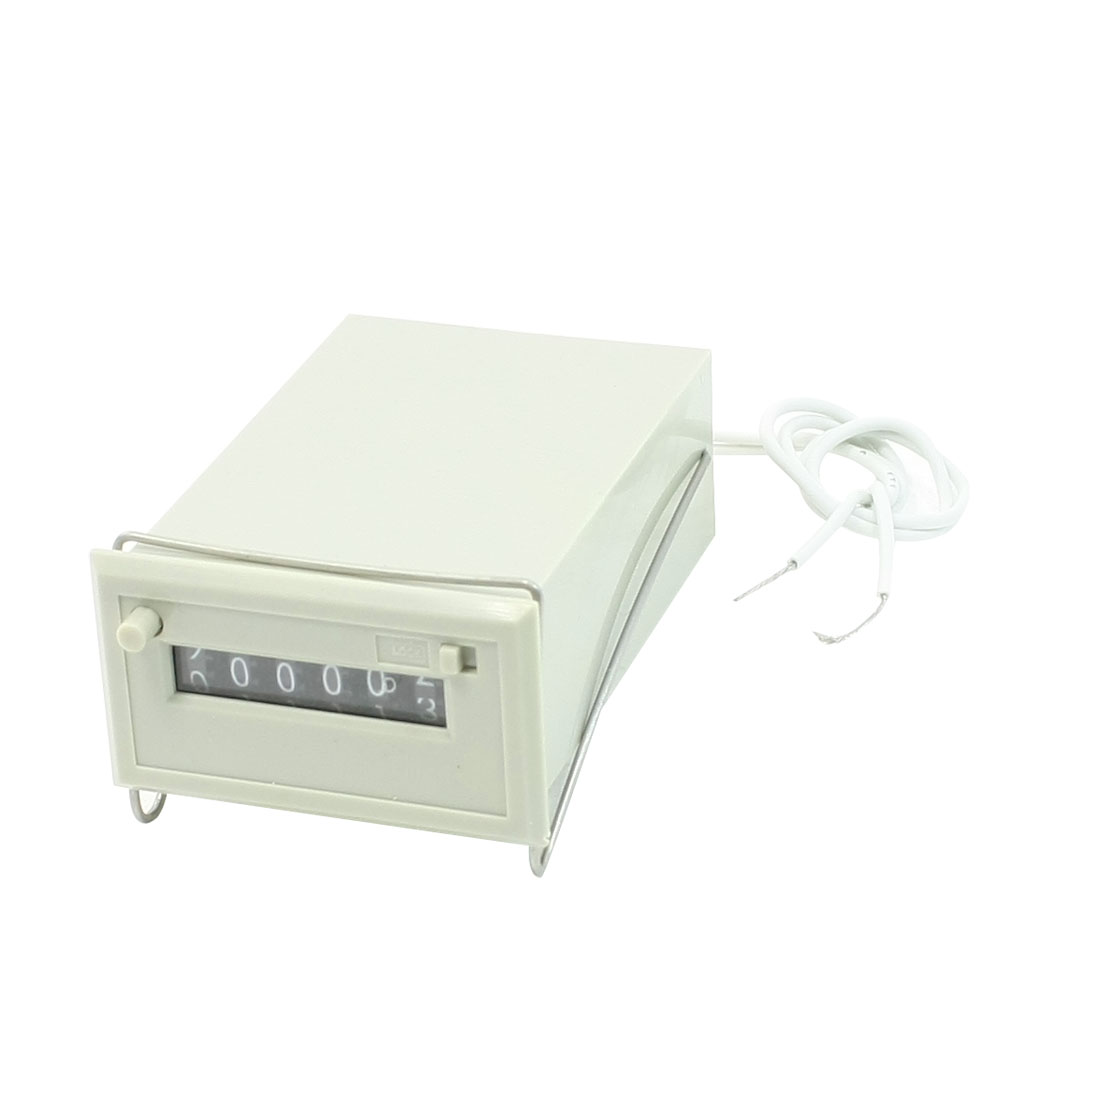 CSK6-CKW AC 220V 6 Digits 2 White Wire Lockable Electronmagnetic Counter